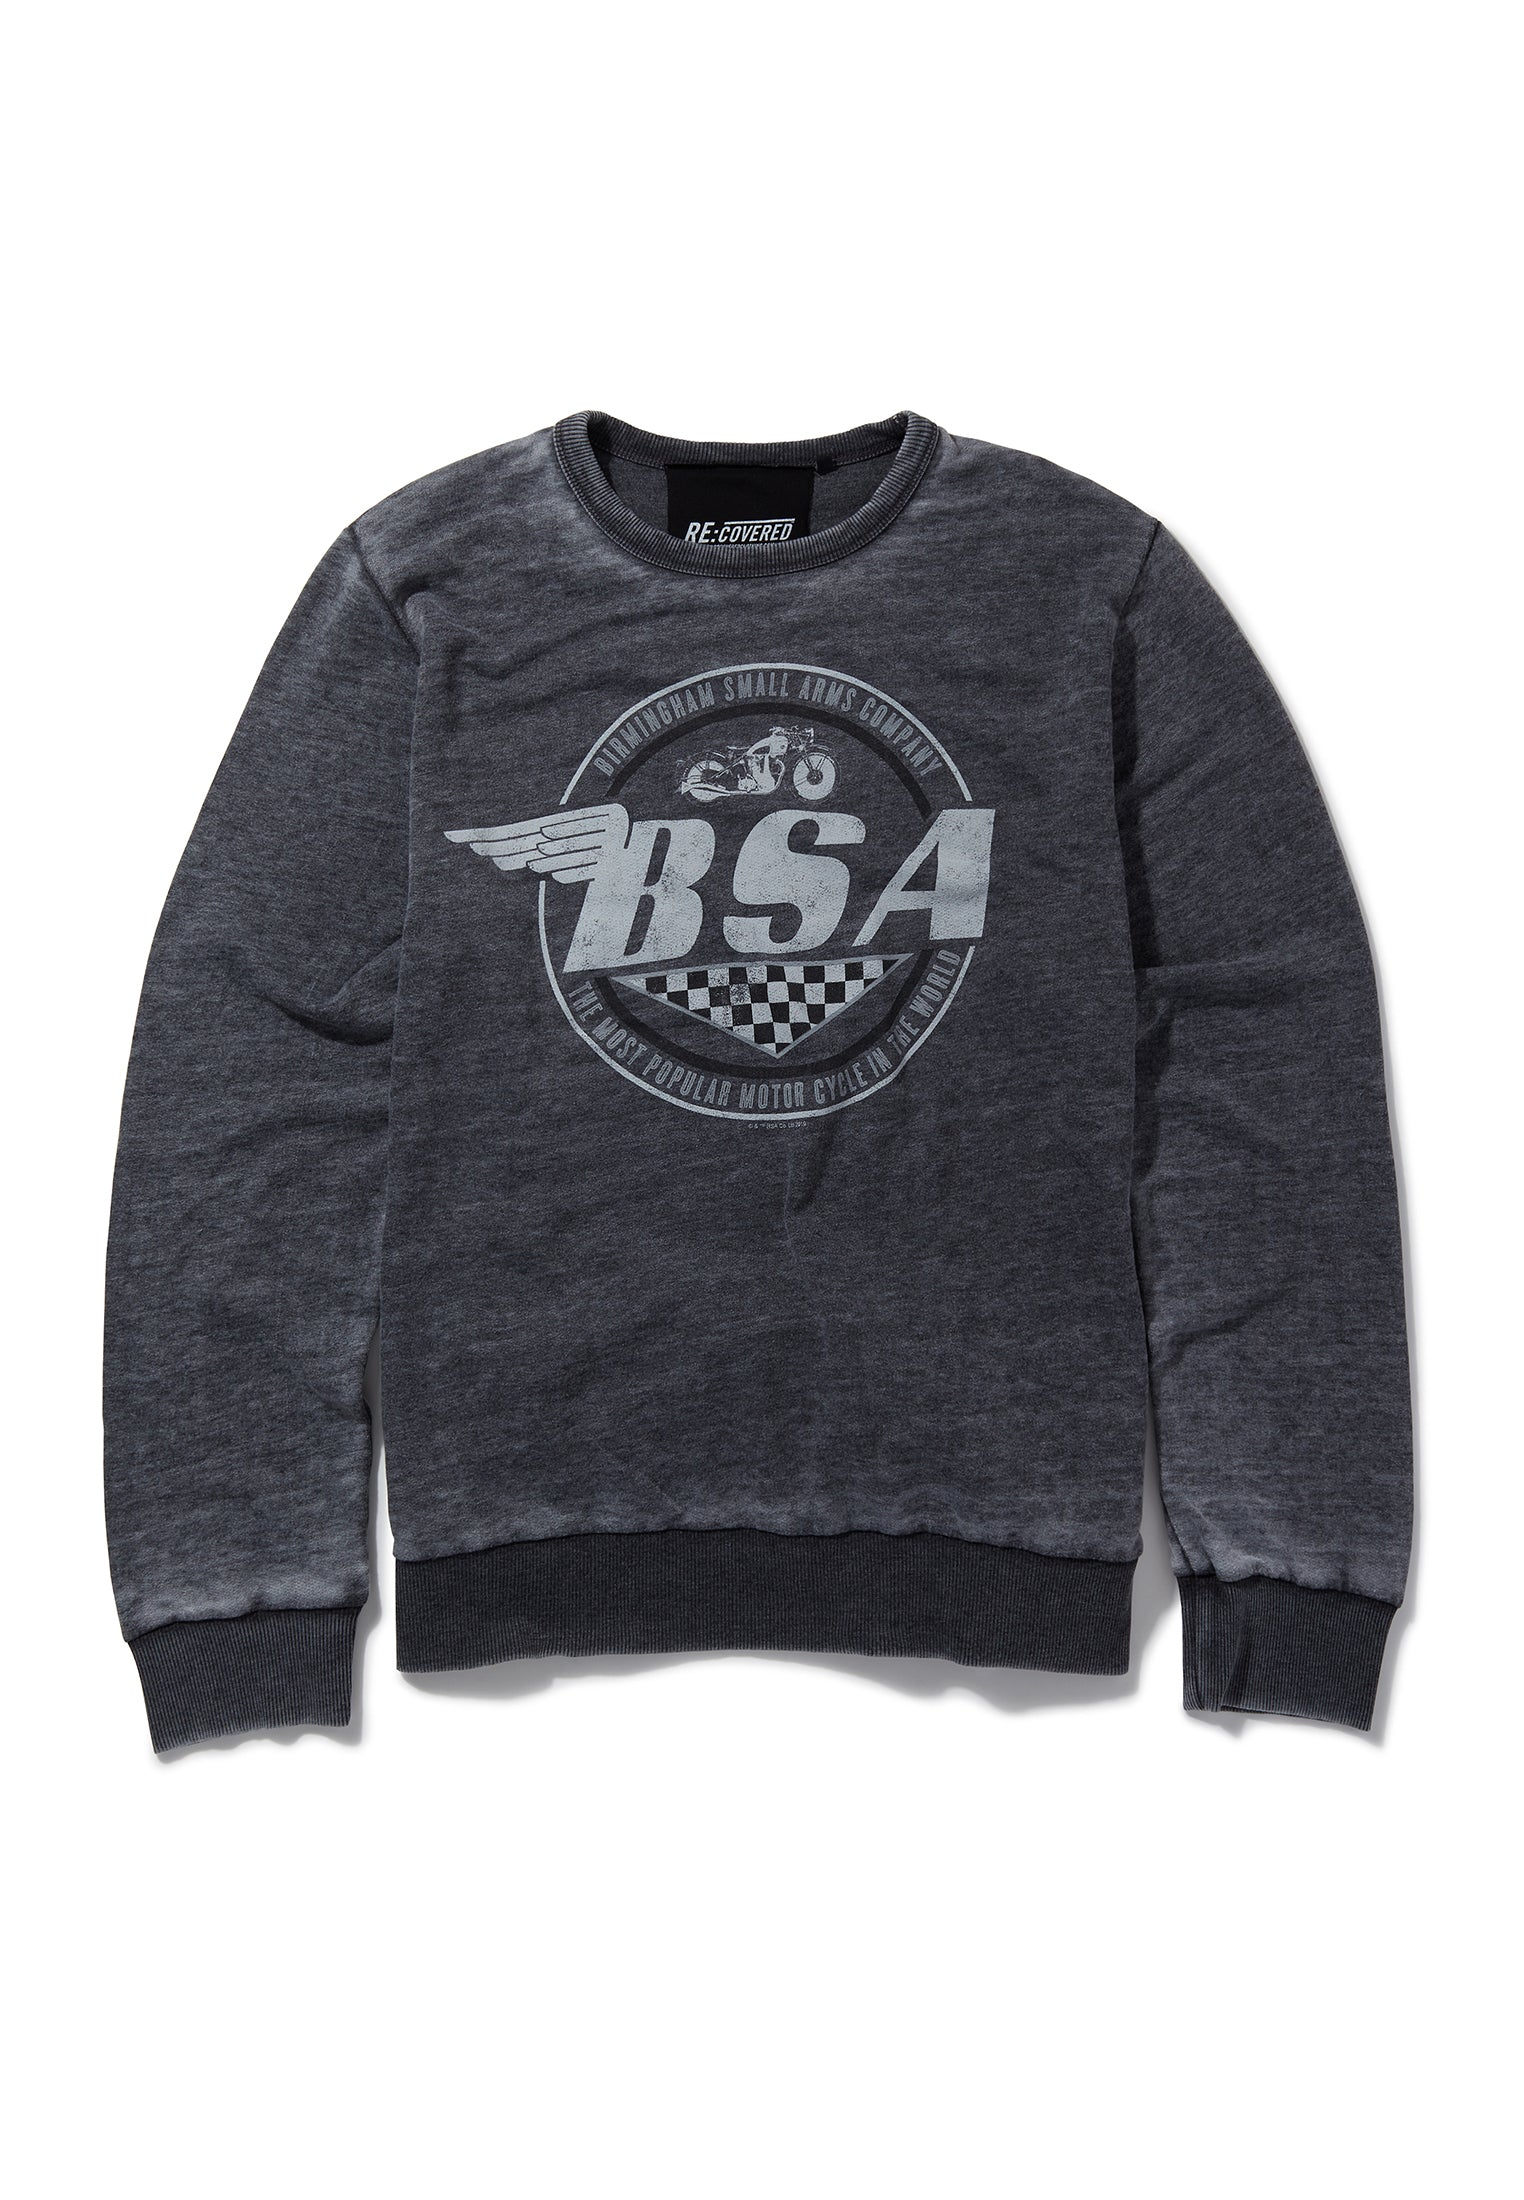 Recovered BSA Motorbike Wings Logo Charcoal Sweatshirt